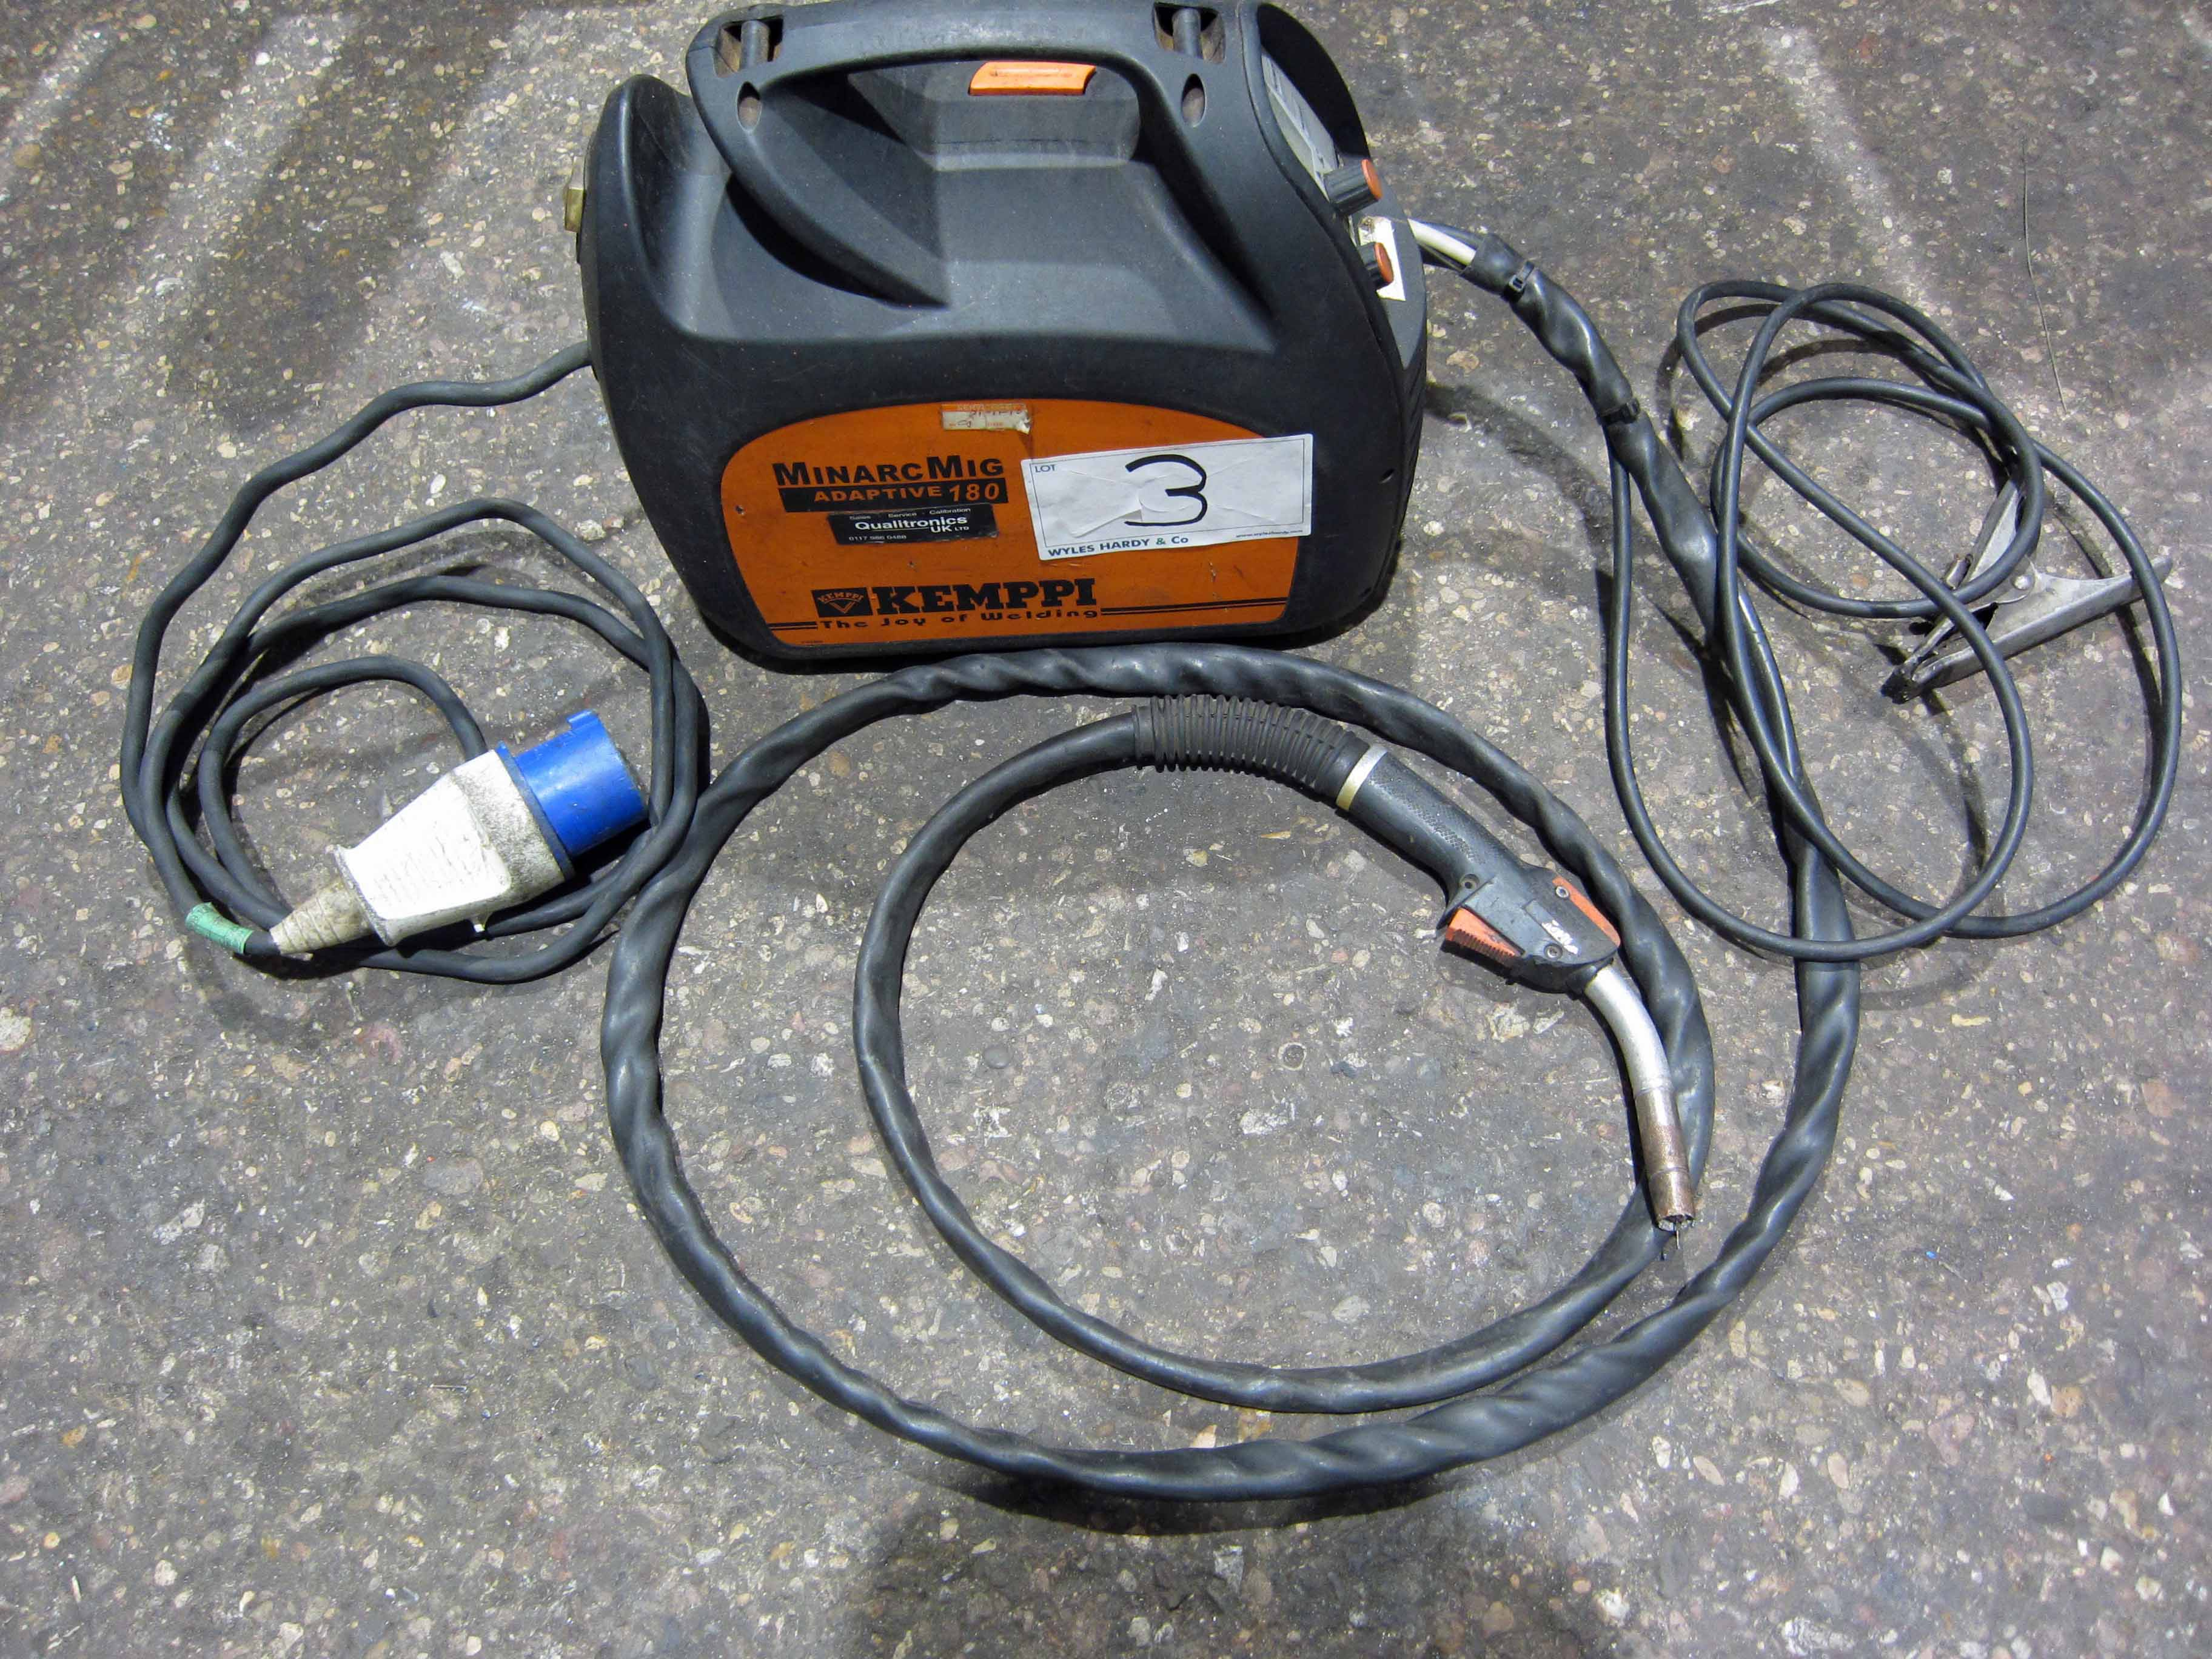 A KEMPPI MinArc Mig Model Adaptive 180 240V Portable Mig Welder complete with Gun and Earth Lead ( - Image 5 of 6